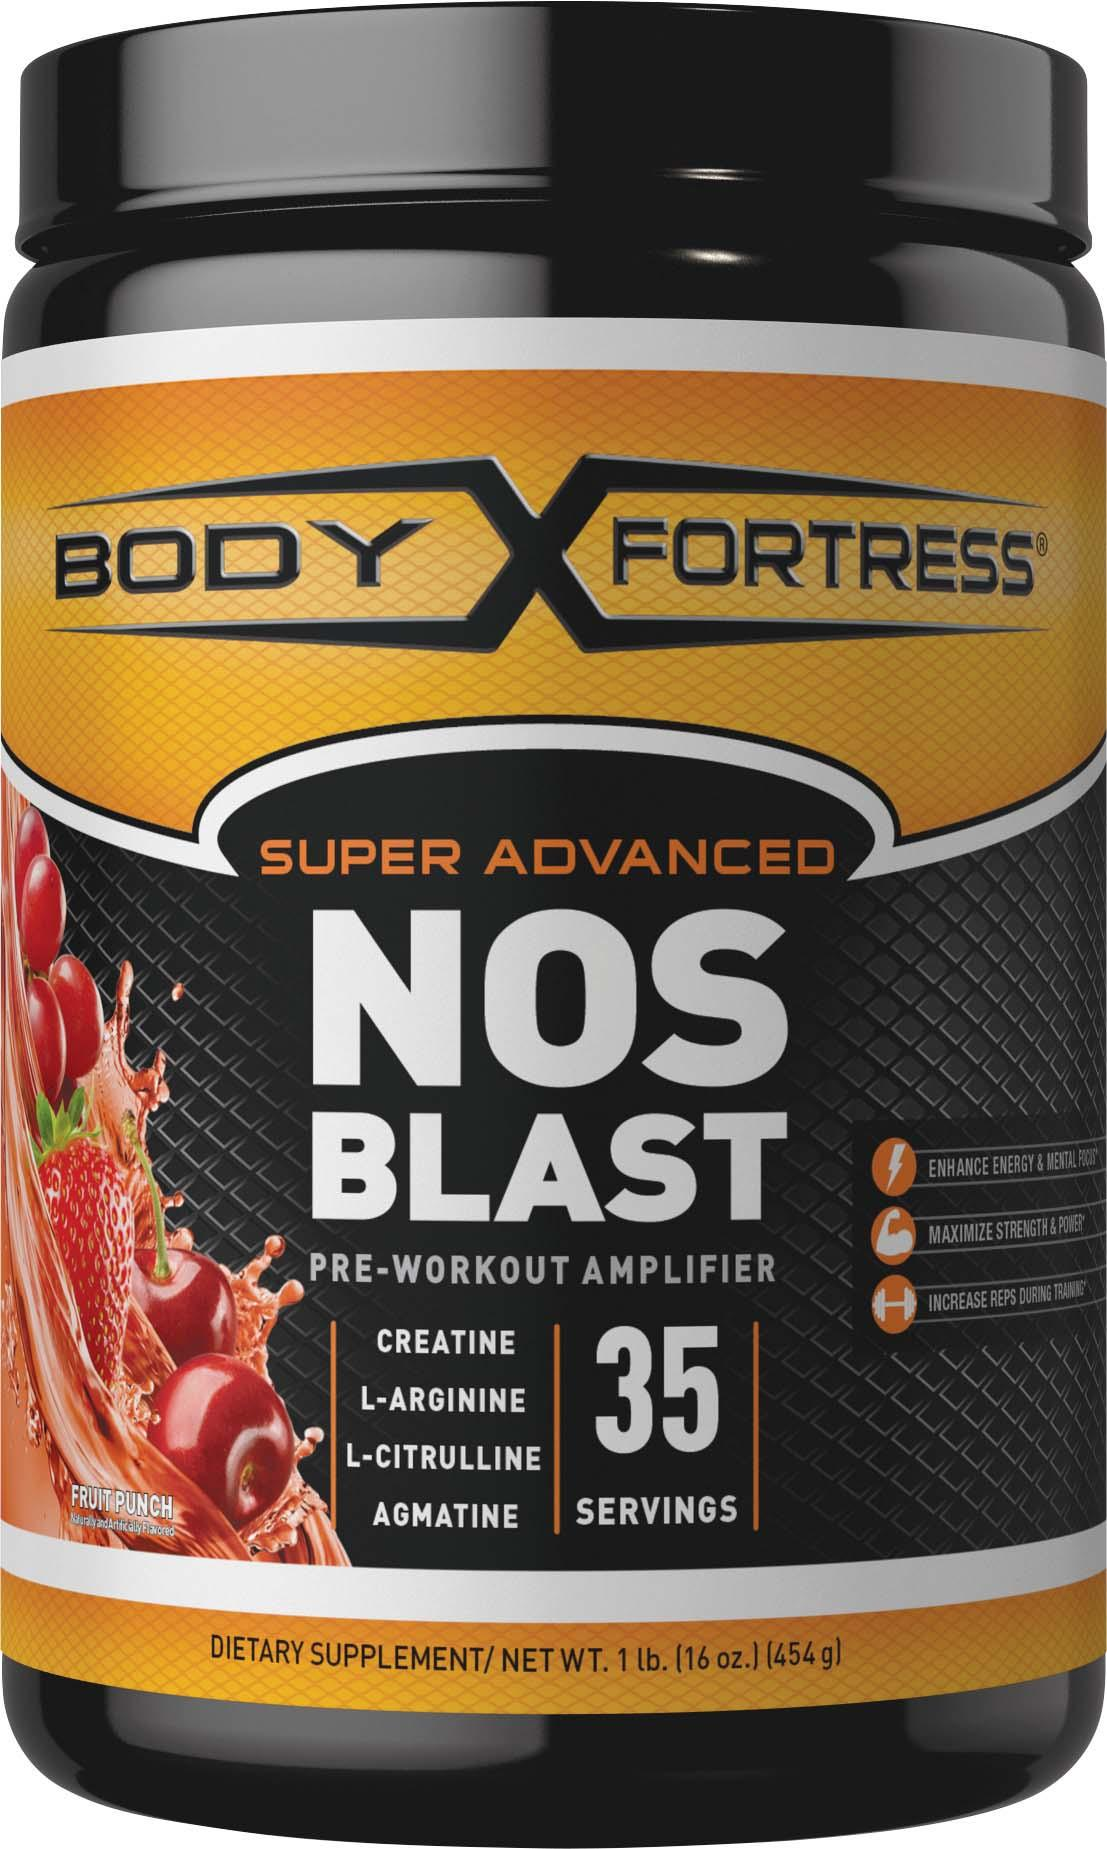 Amazon.com: Body Fortress Super Advanced NOS Blast, Fruit Punch, 1 Pounds: Health & Personal Care